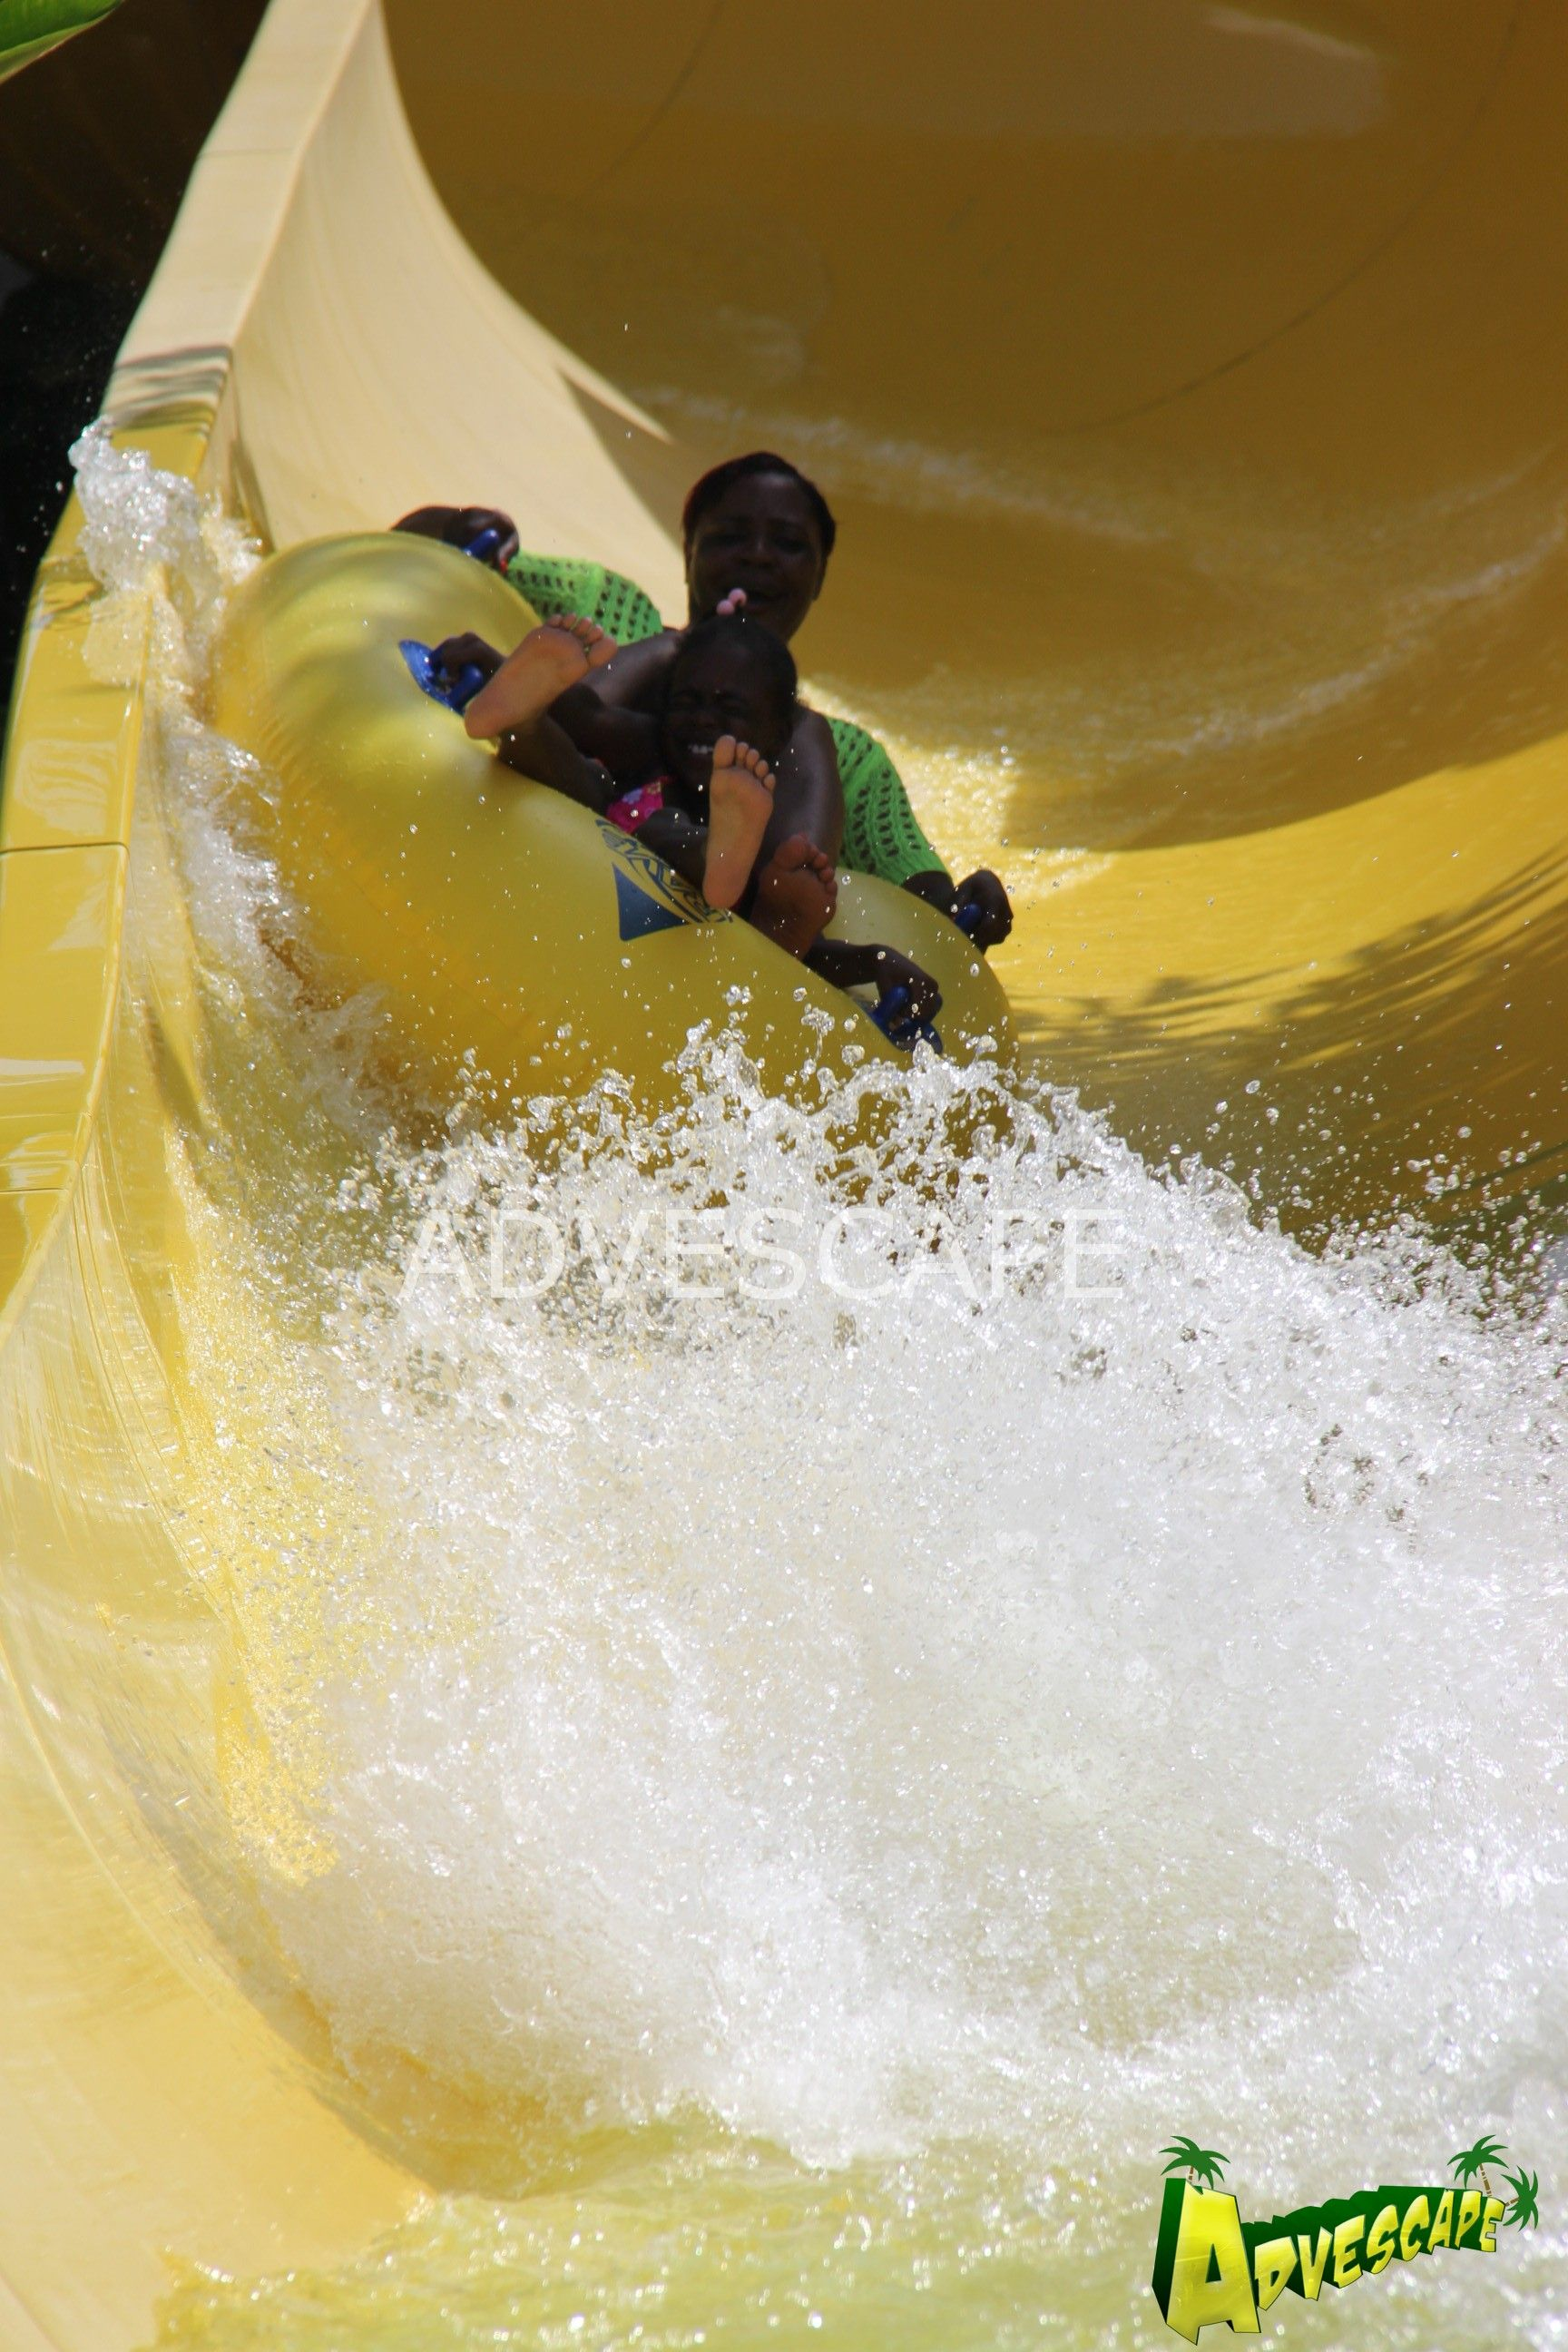 Tubing down the slide advescape kool runnings water park negril tubing down the slide find this pin and more on kool runnings water park publicscrutiny Images